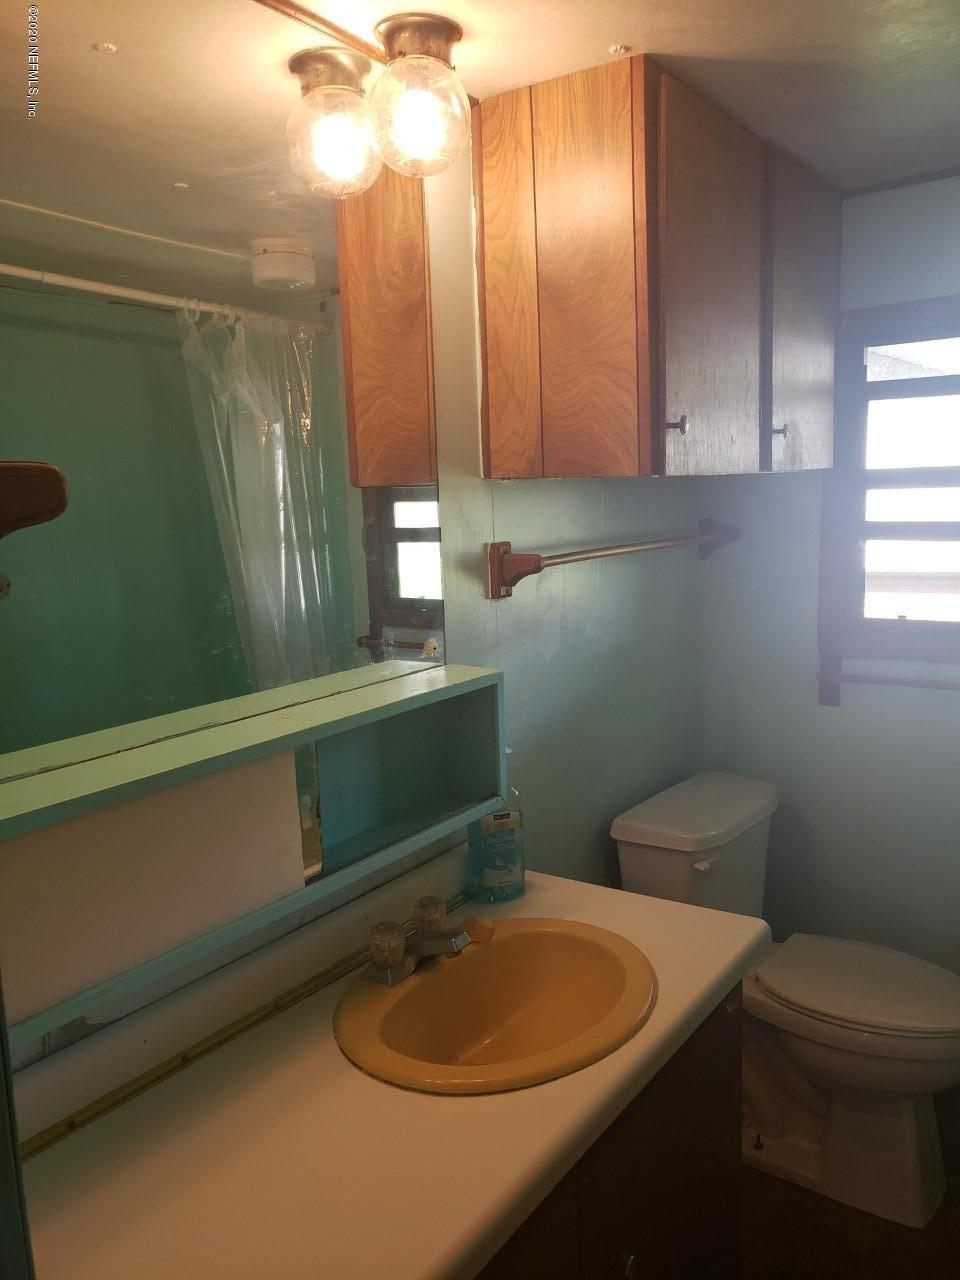 100 FLORIDA, CRESCENT CITY, FLORIDA 32112, 2 Bedrooms Bedrooms, ,1 BathroomBathrooms,Residential,For sale,FLORIDA,1058674